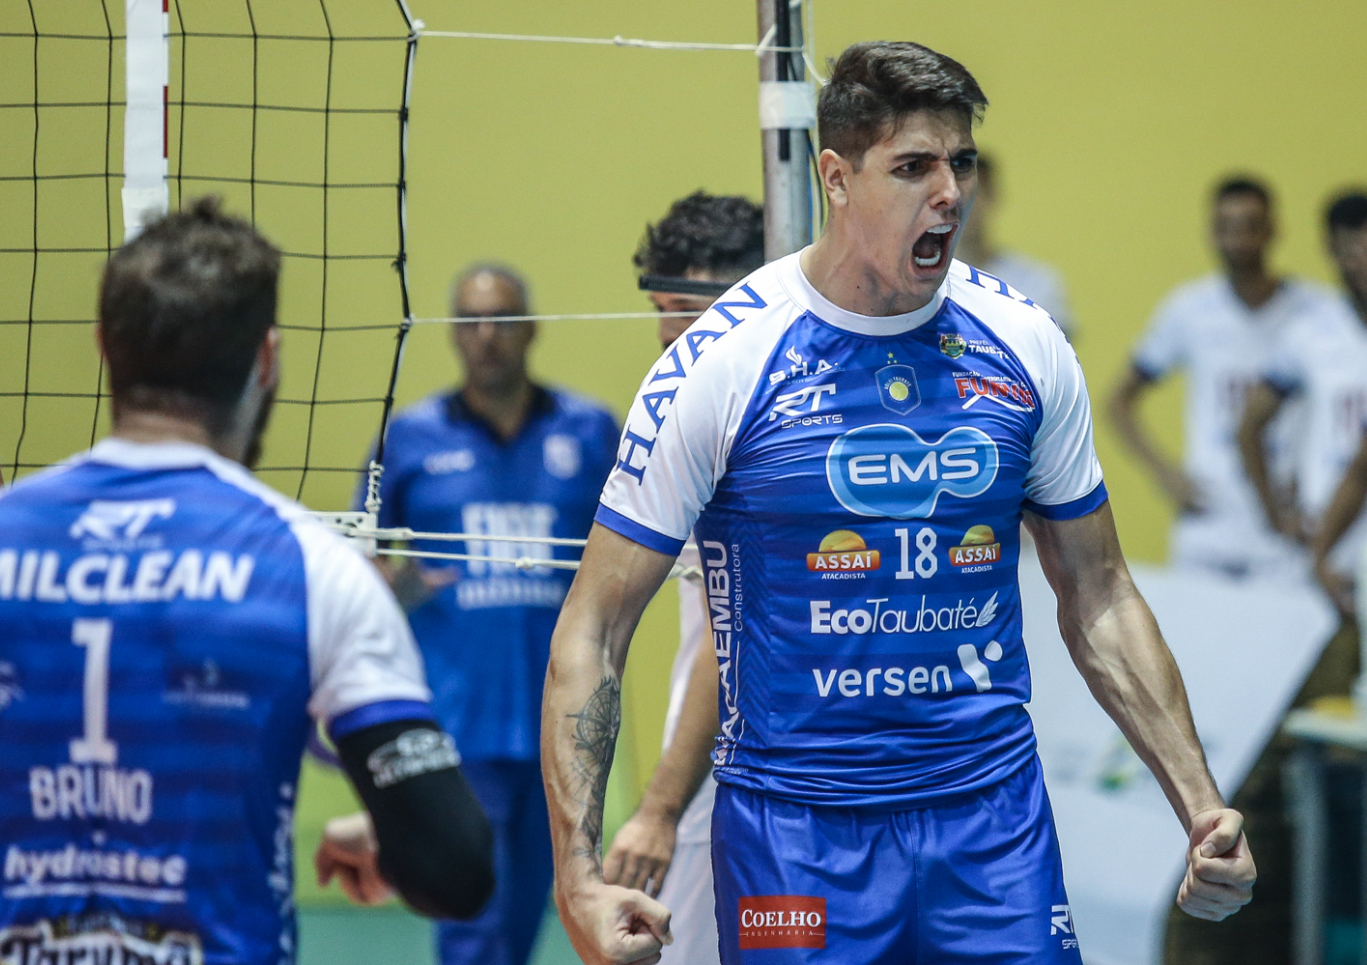 Taubaté bate Minas no tie-break e larga na frente pela final da Superliga Masculina